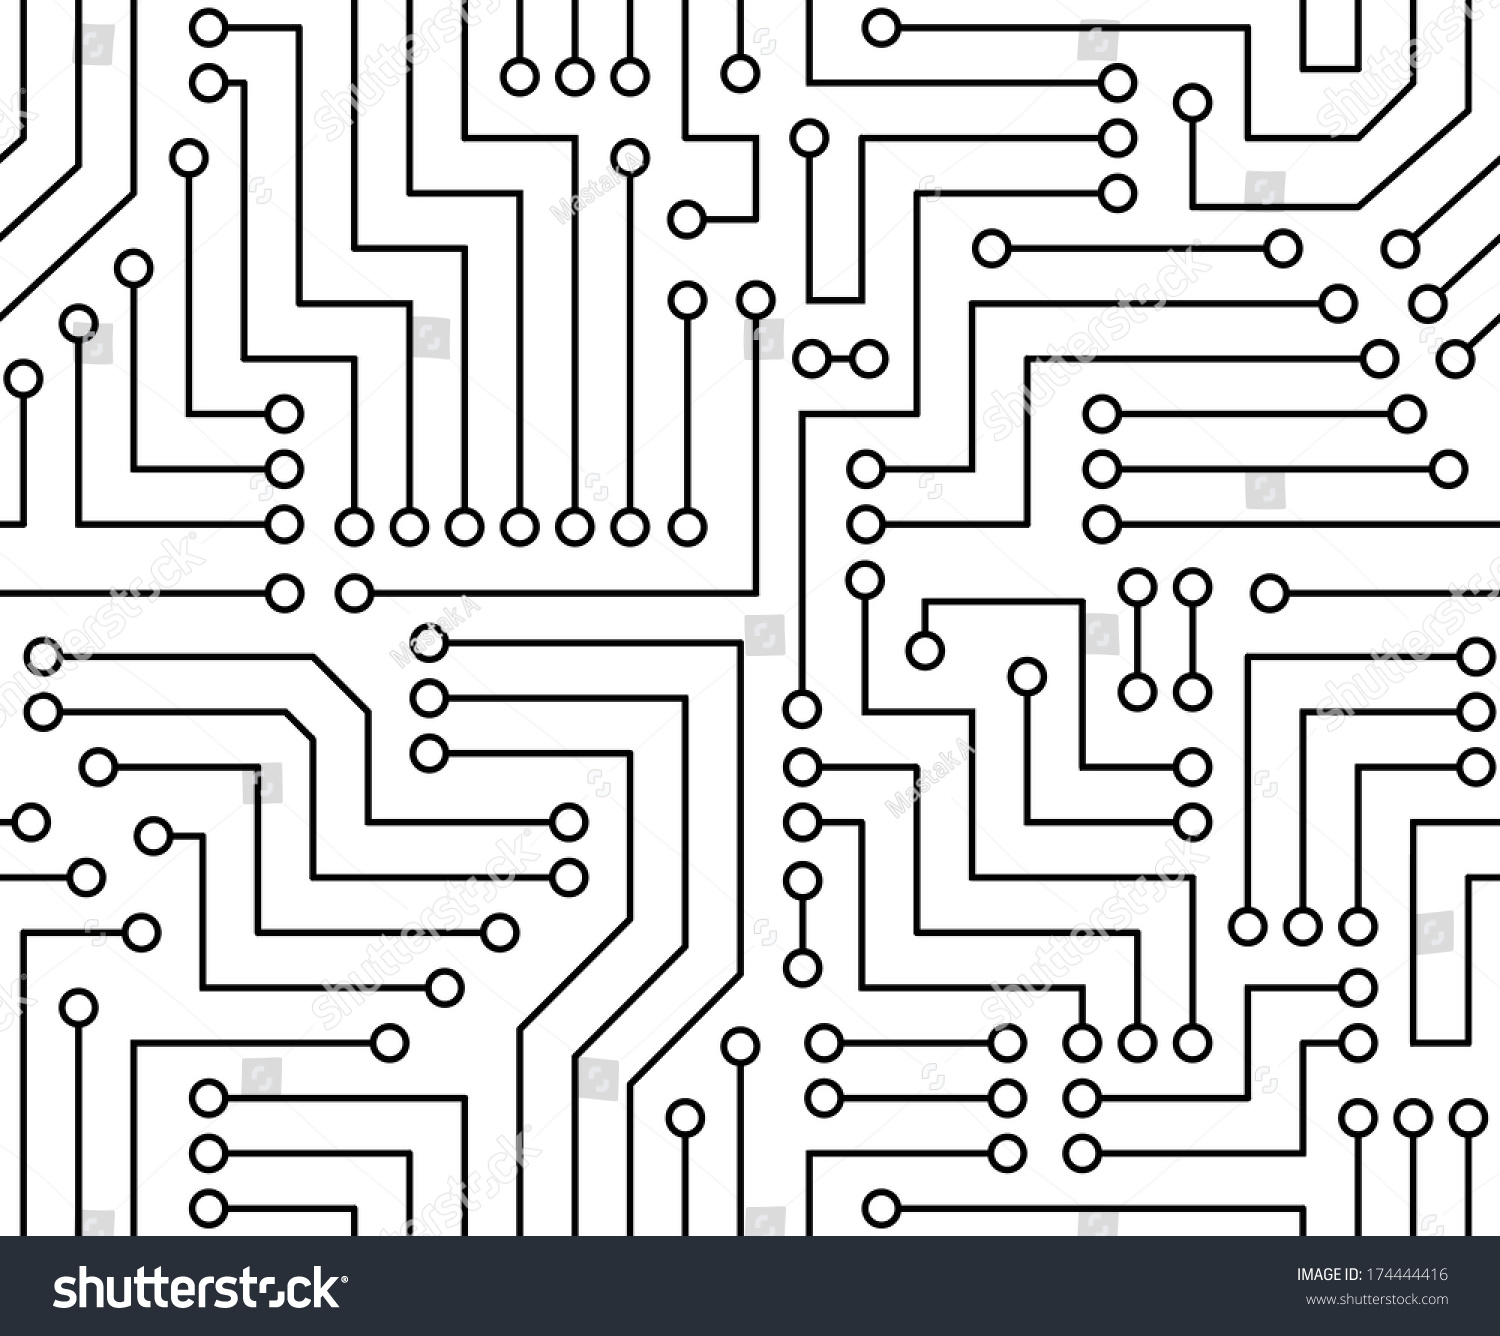 Black White Printed Circuit Board Seamless Stock Vector 174444416 ...